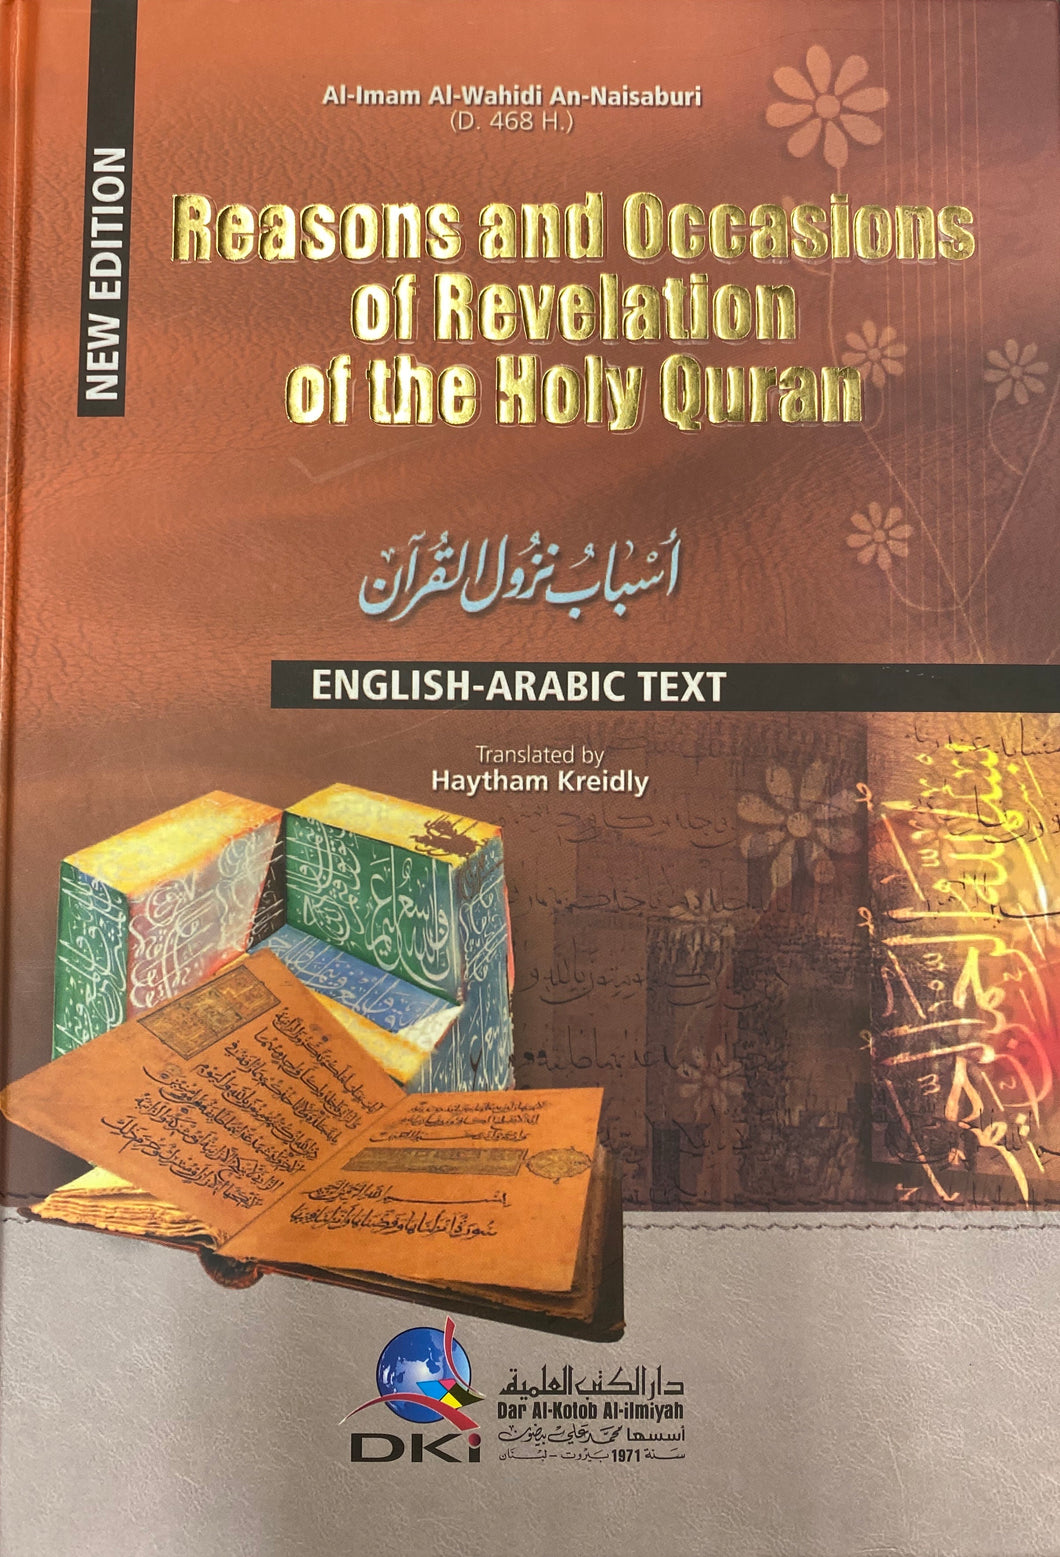 Reasons & Occasions of Revelation of the Holy Quran